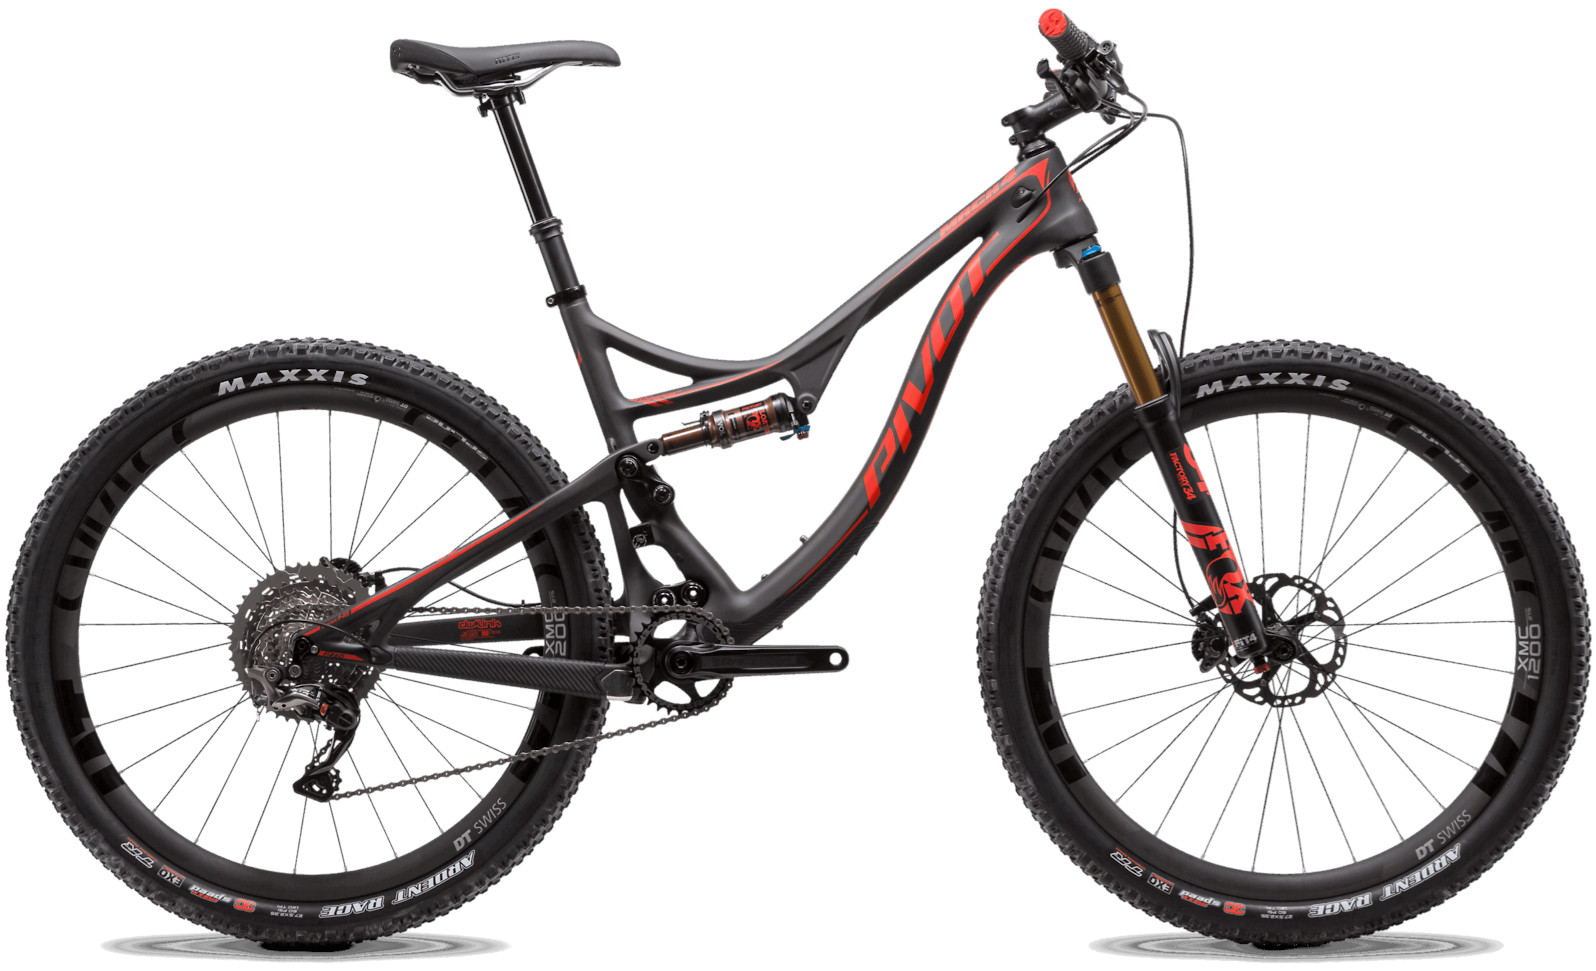 2020 Pivot Mach 4 Factory Red (Team XTR build pictured)